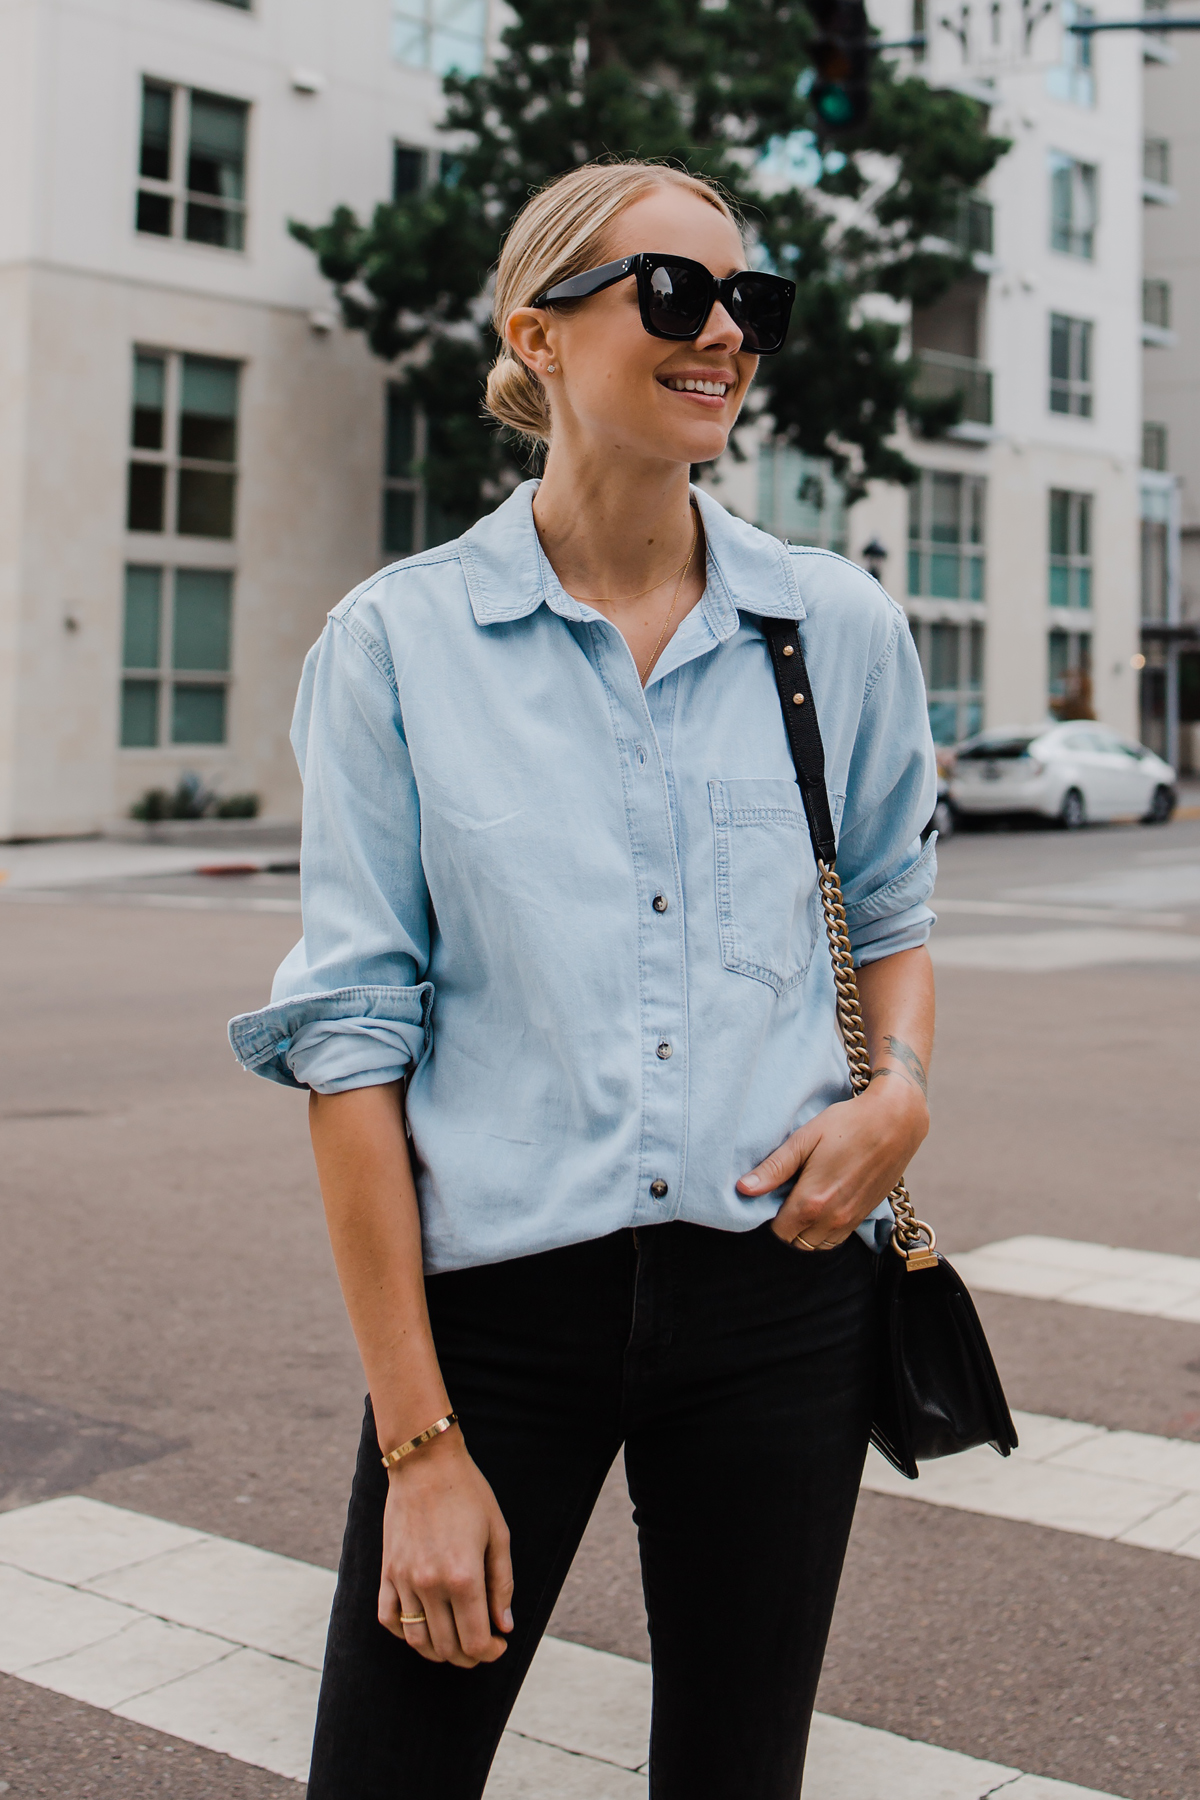 Blonde Woman Wearing Topshop Oversized Denim Shirt Topshop Black Skinny Jeans Fashion Jackson San Diego Blogger Fashion Blogger Street Style